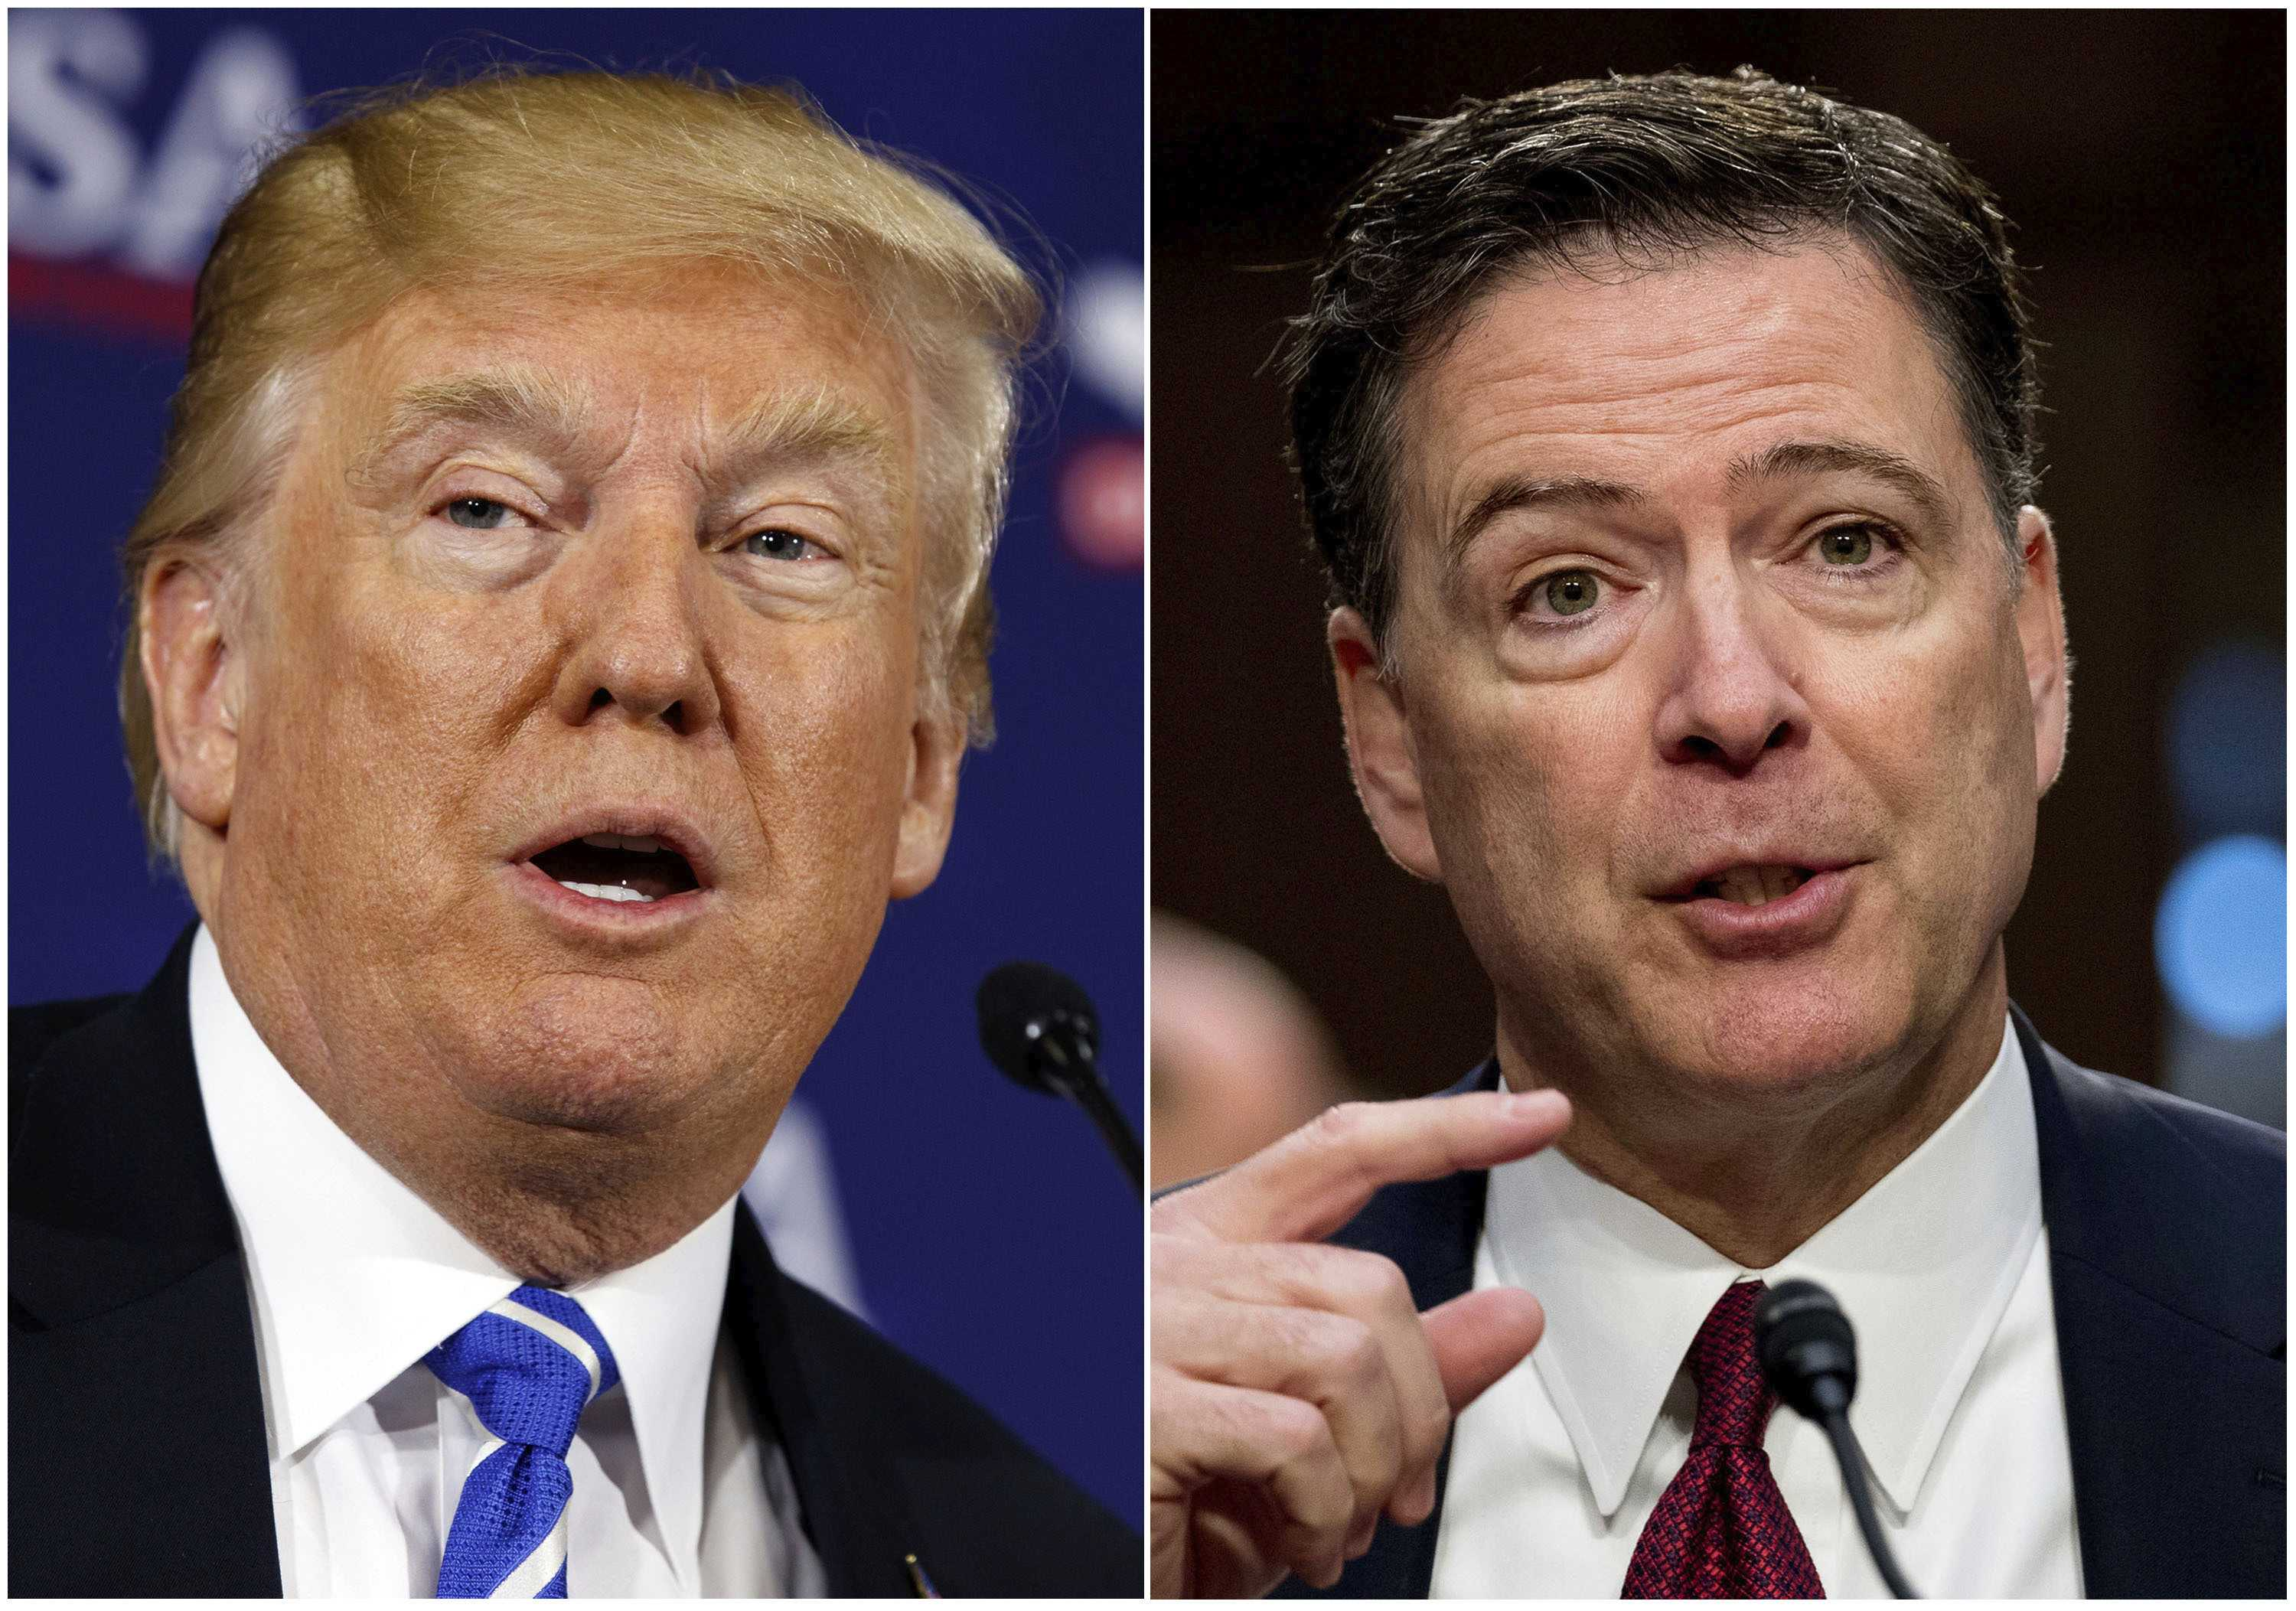 Comey says Trump 'morally unfit' in prime-time interview